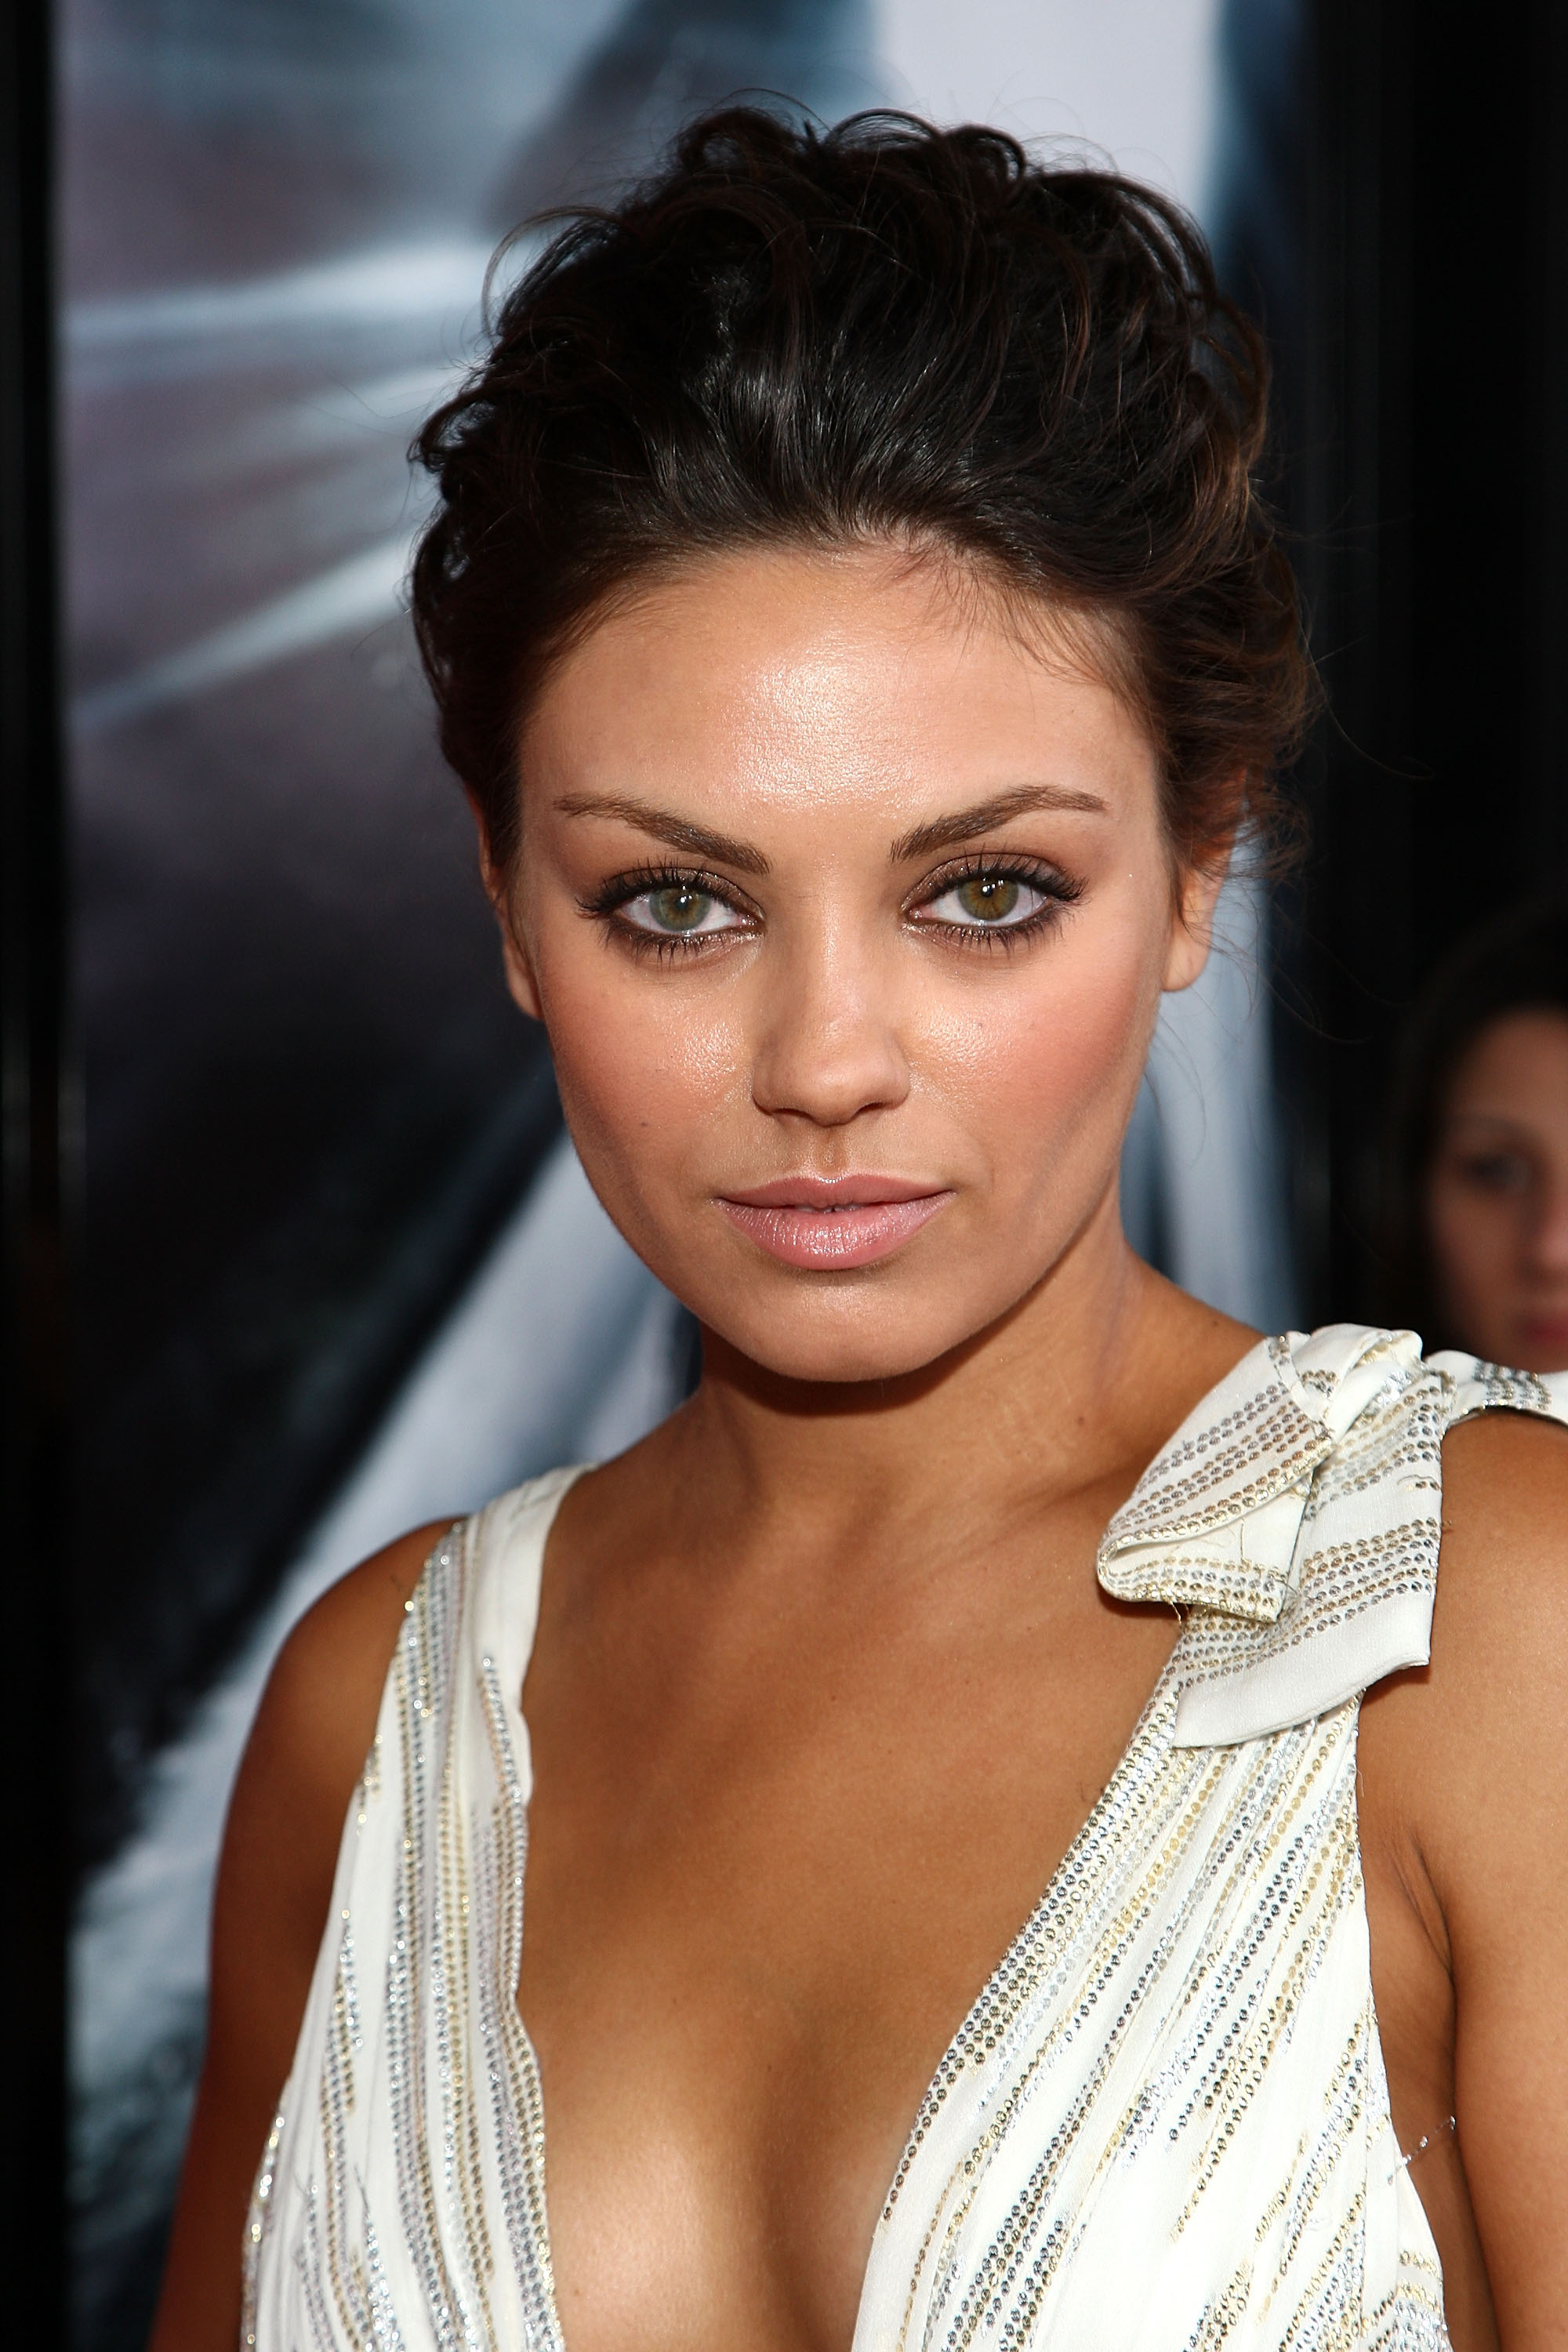 64370_Celebutopia-Mila_Kunis_arrives_for_the_premiere_of_the_Max_Payne-13_122_1032lo.jpg